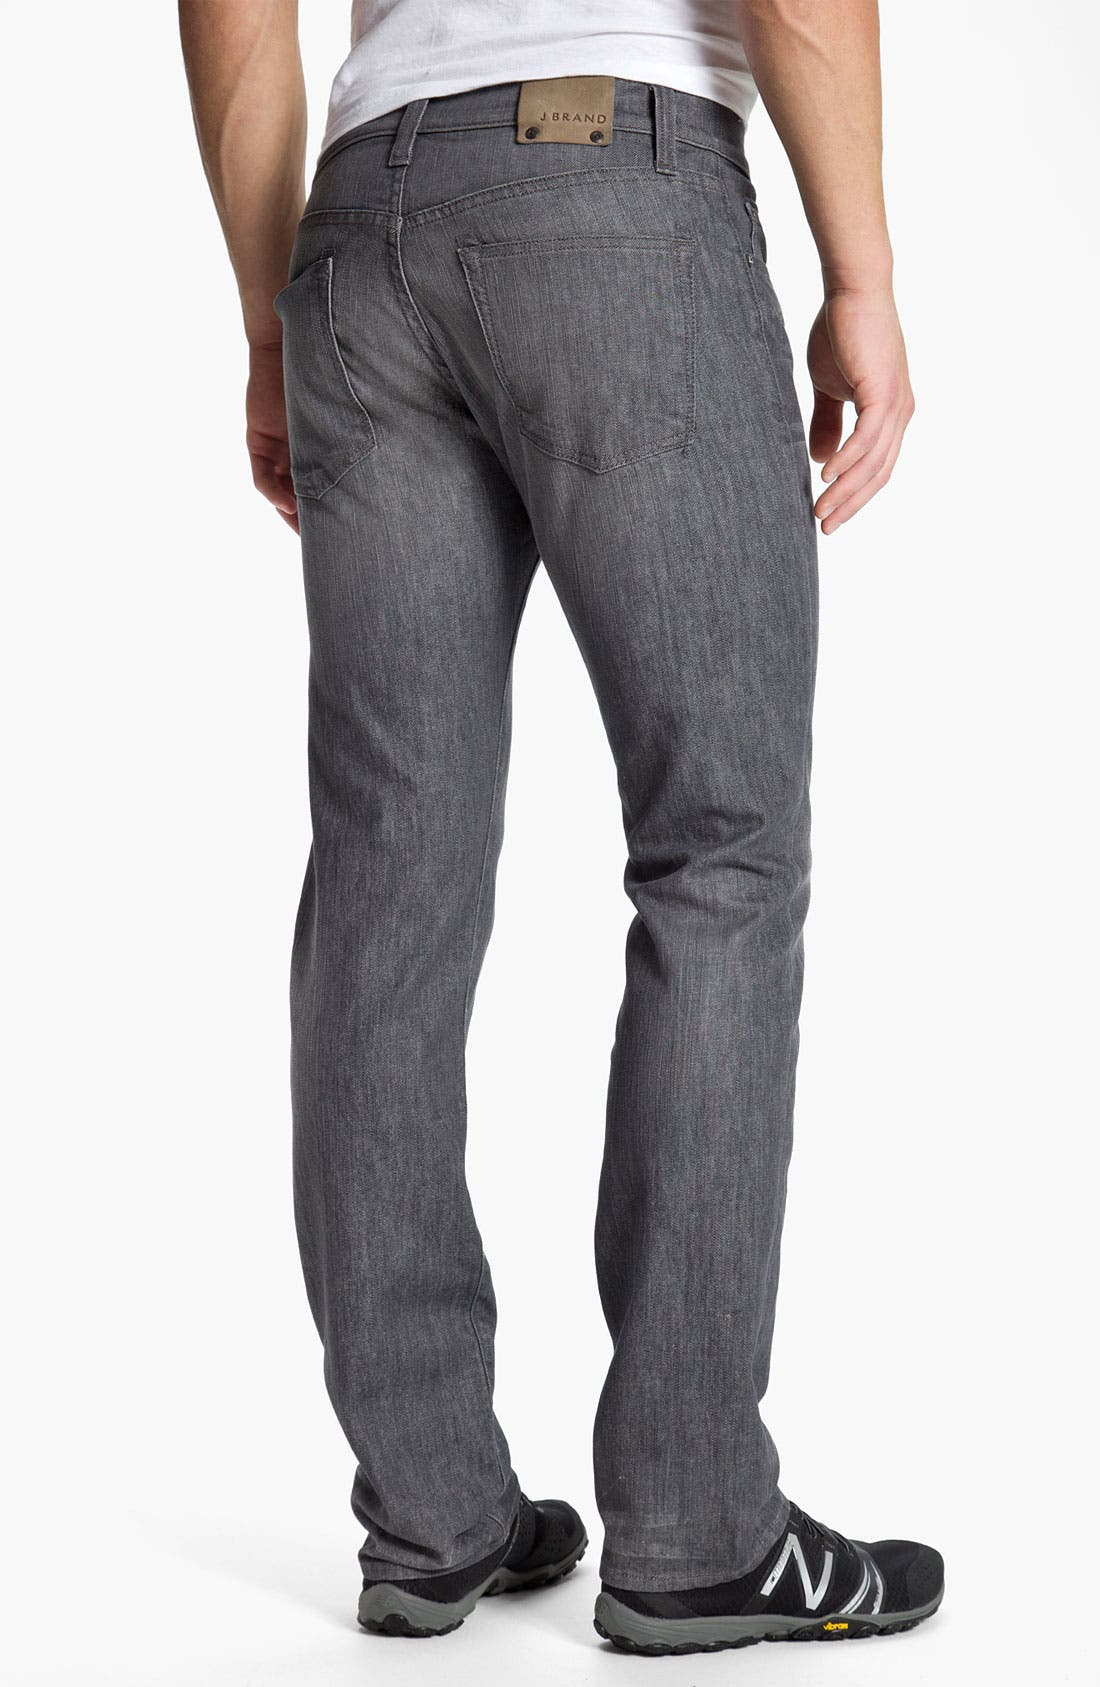 Alternate Image 1 Selected - J Brand 'Kane' Slim Fit Jeans (Ricochet) (Save Now through 12/9)